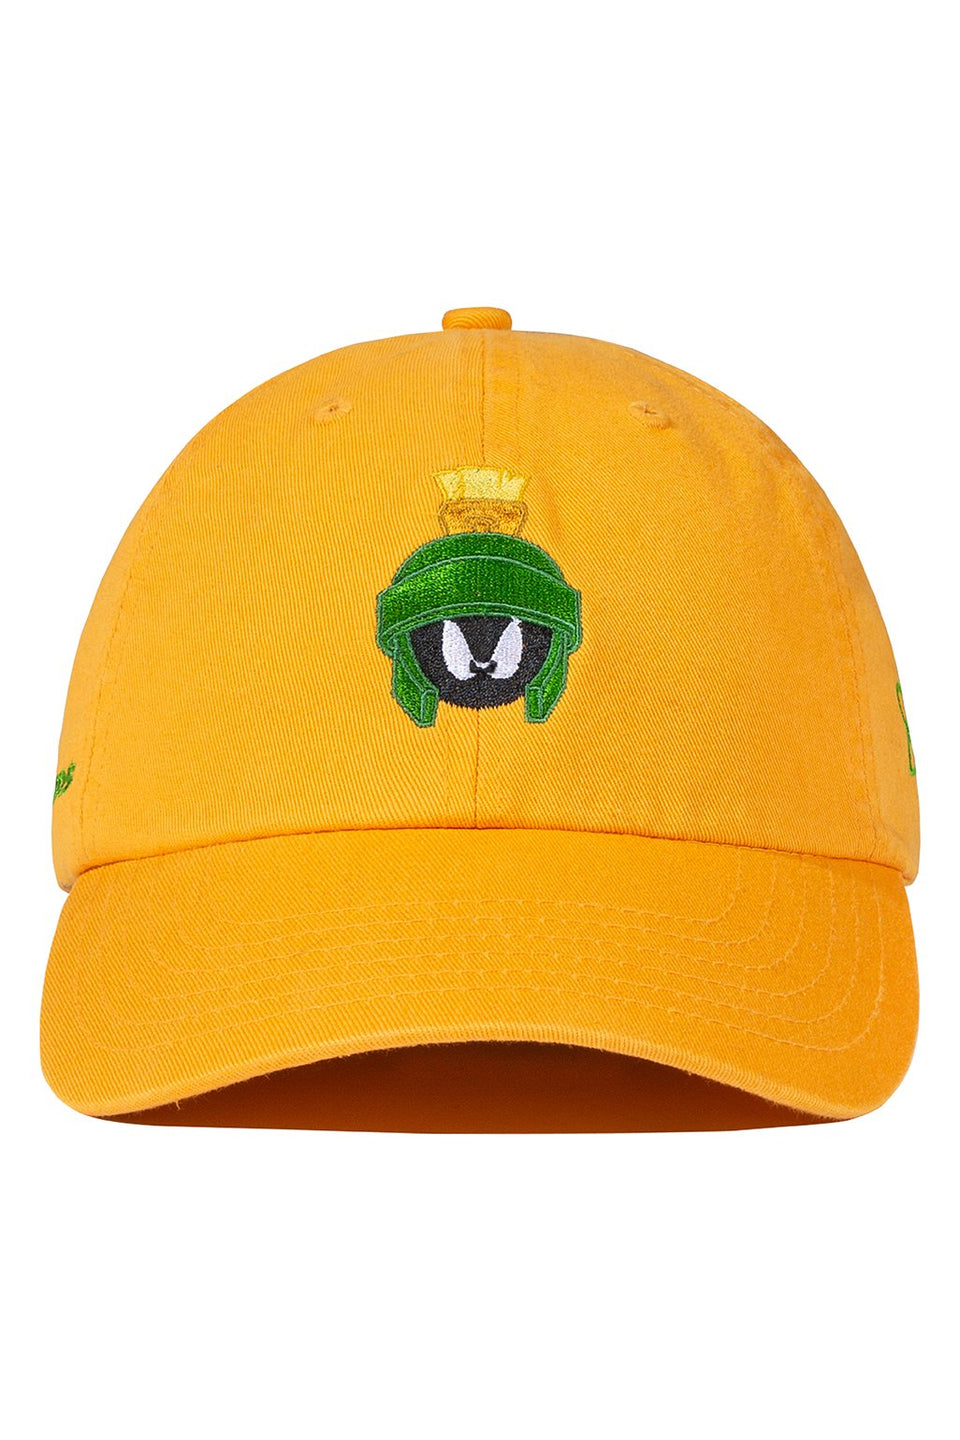 55ea2634bdeb4 Marvin Head Dad Hat Marvin Head Dad Hat